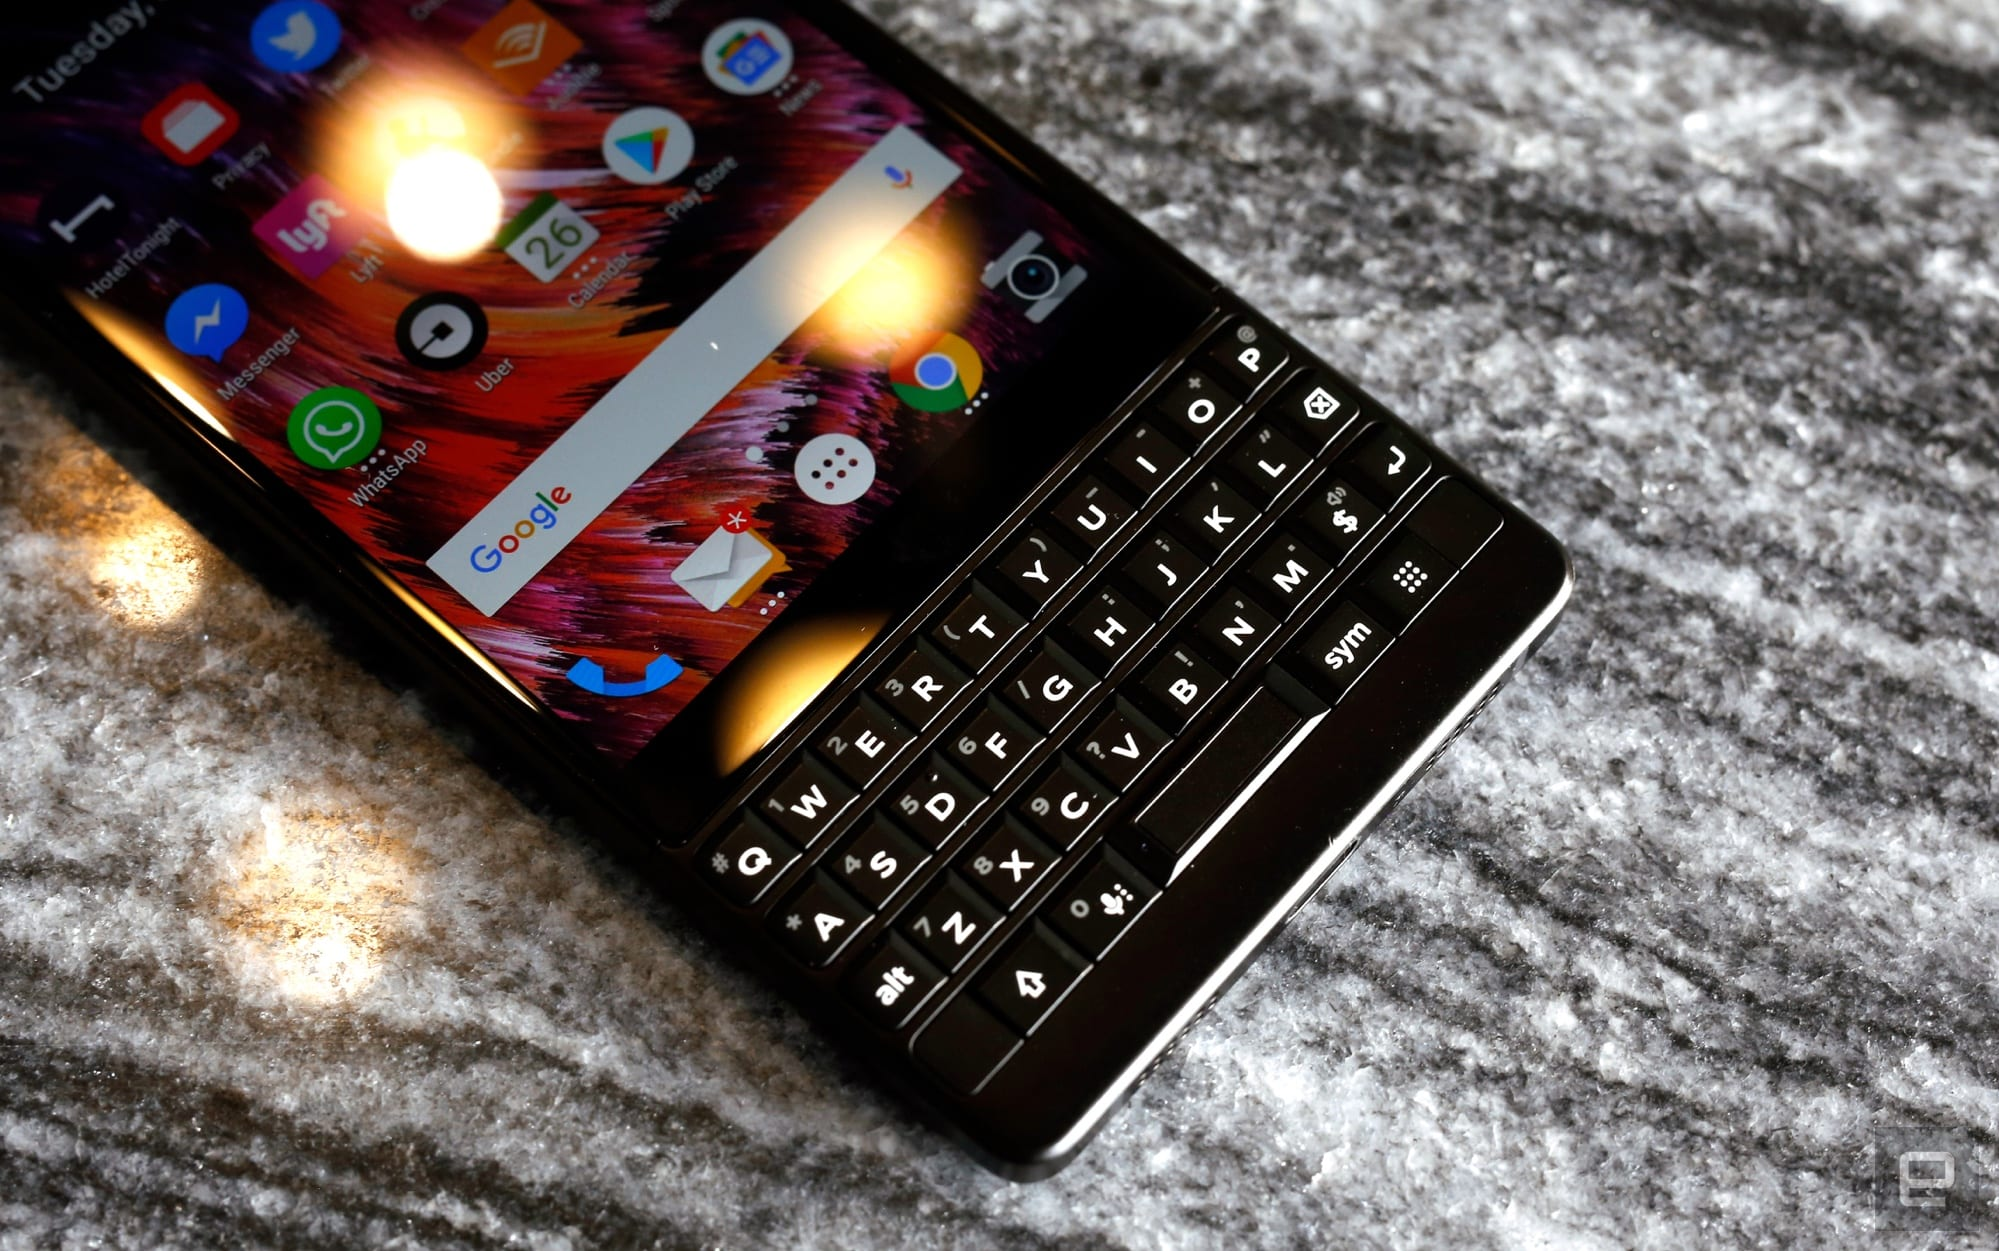 BlackBerry KEY2 review: The undisputed keyboard king